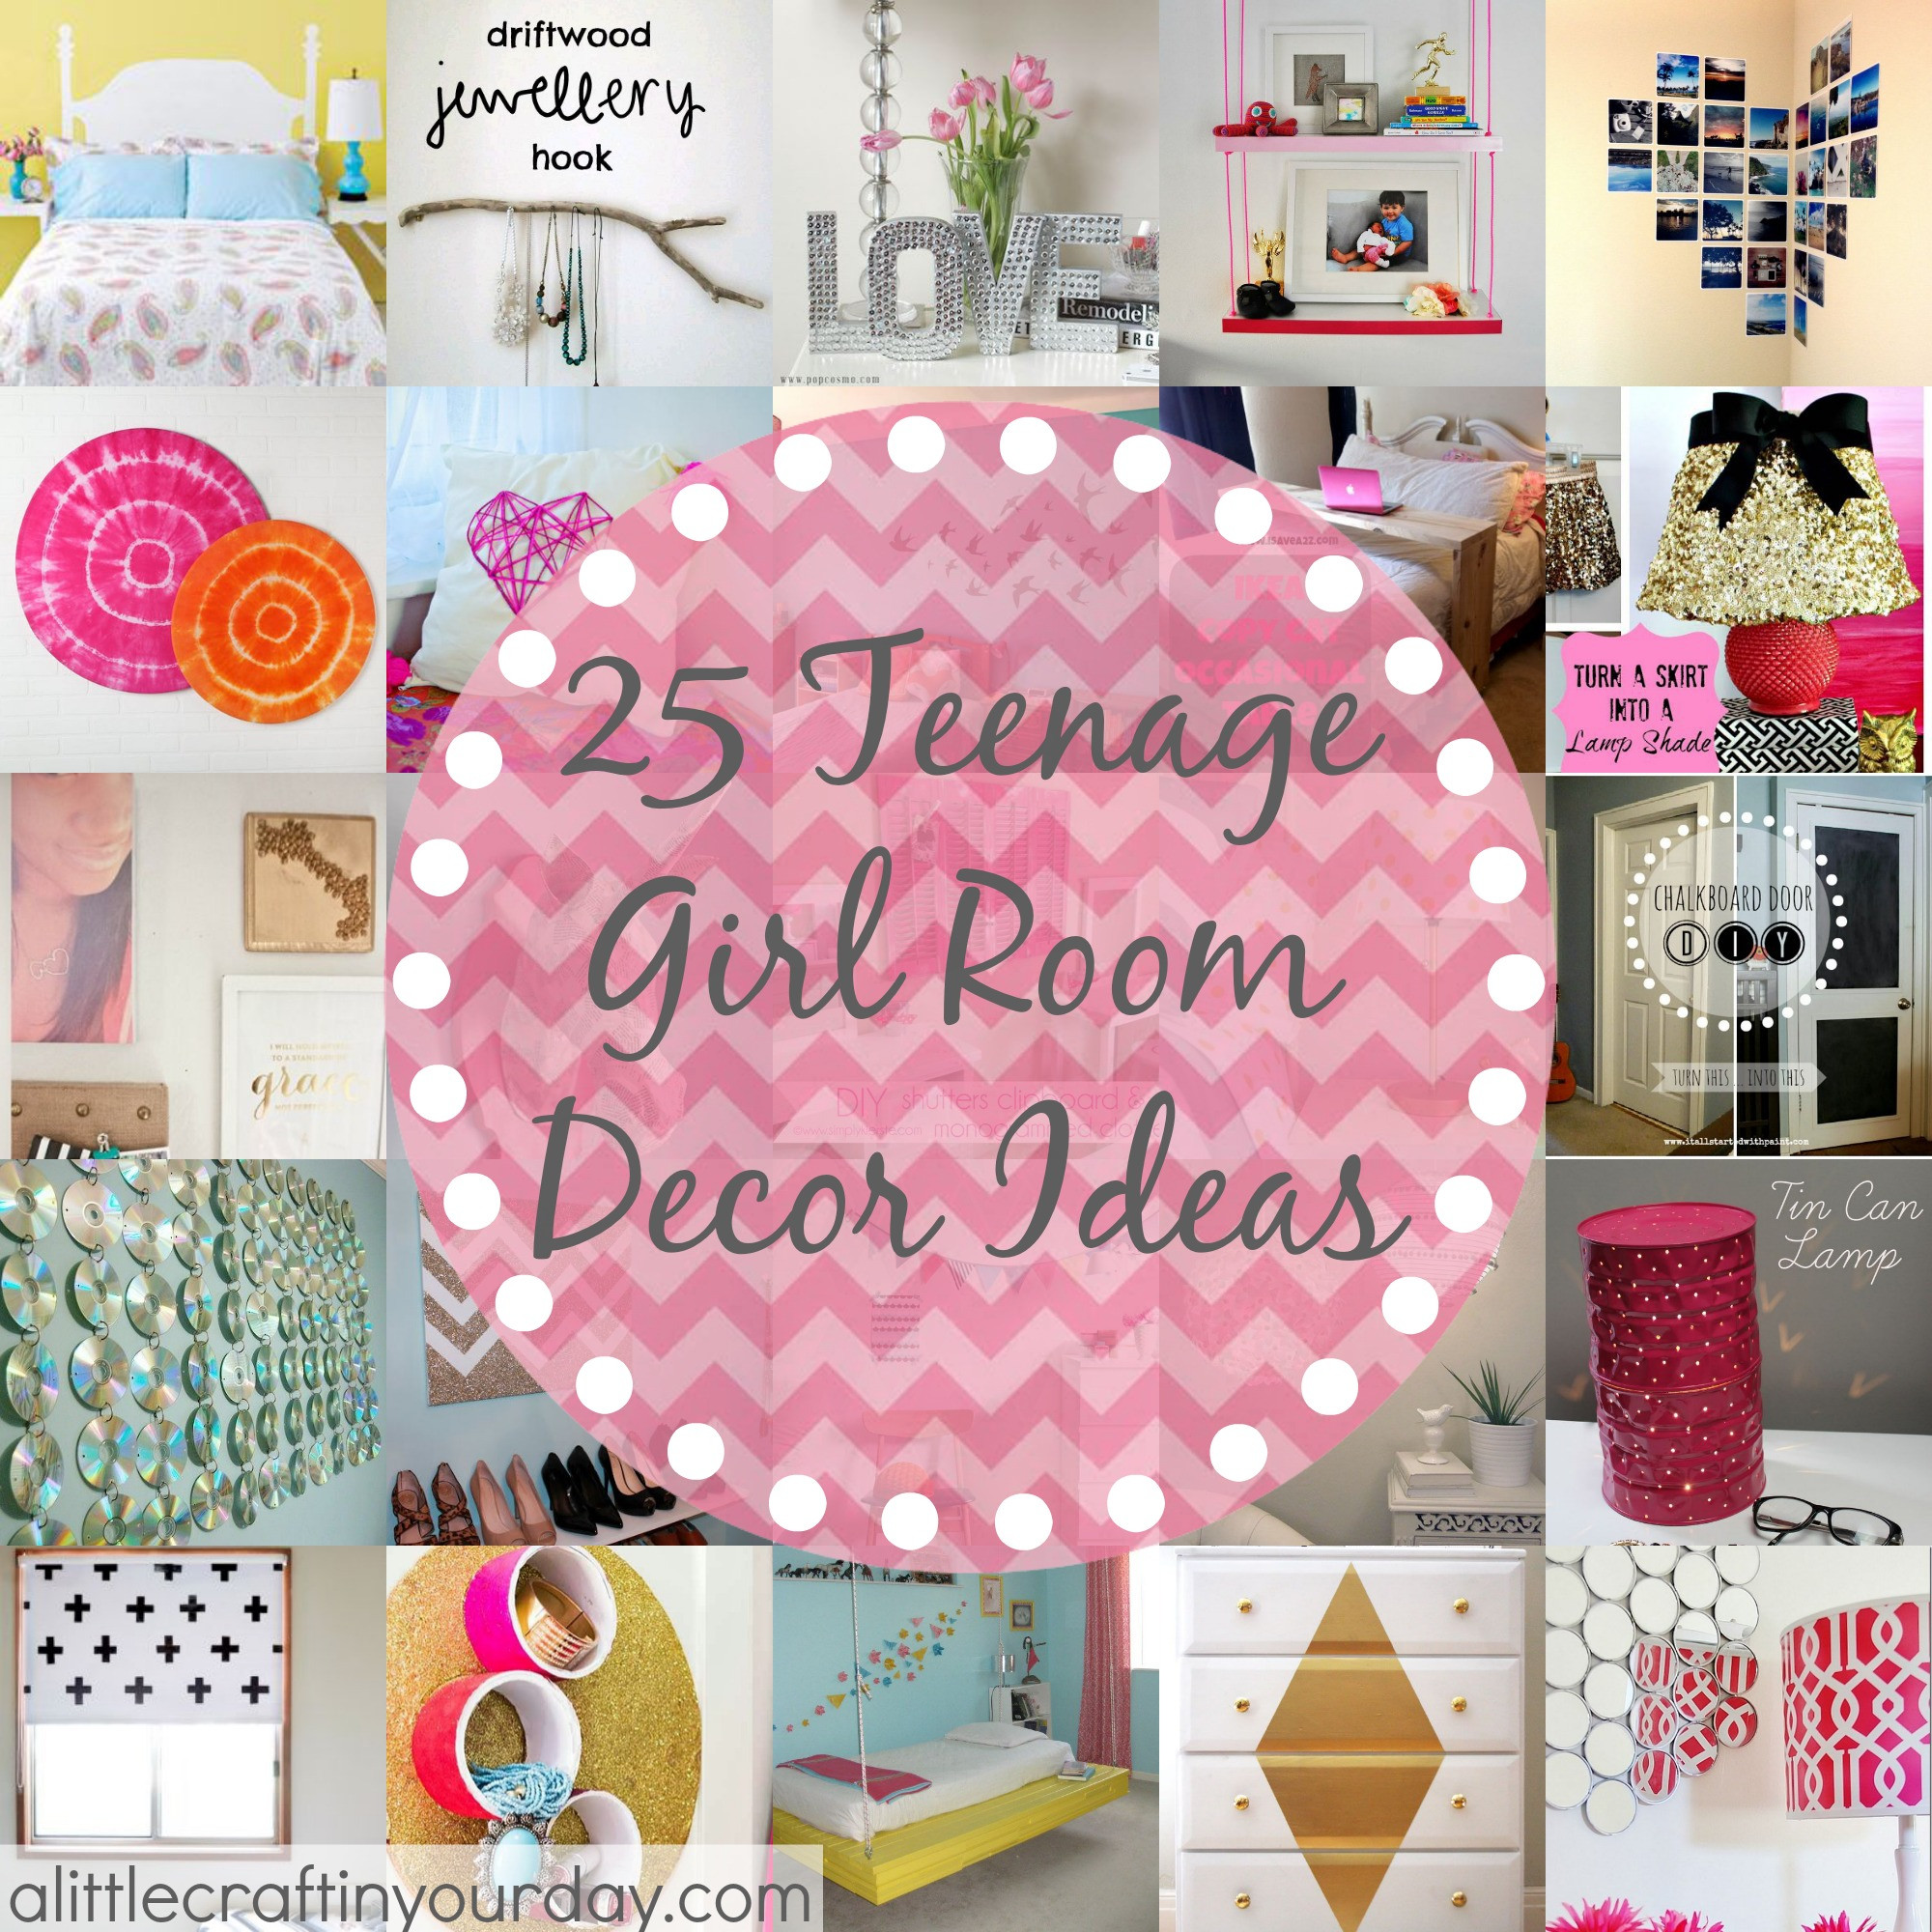 Best ideas about DIY Room Decorations For Teenage Girls . Save or Pin 25 More Teenage Girl Room Decor Ideas A Little Craft In Now.